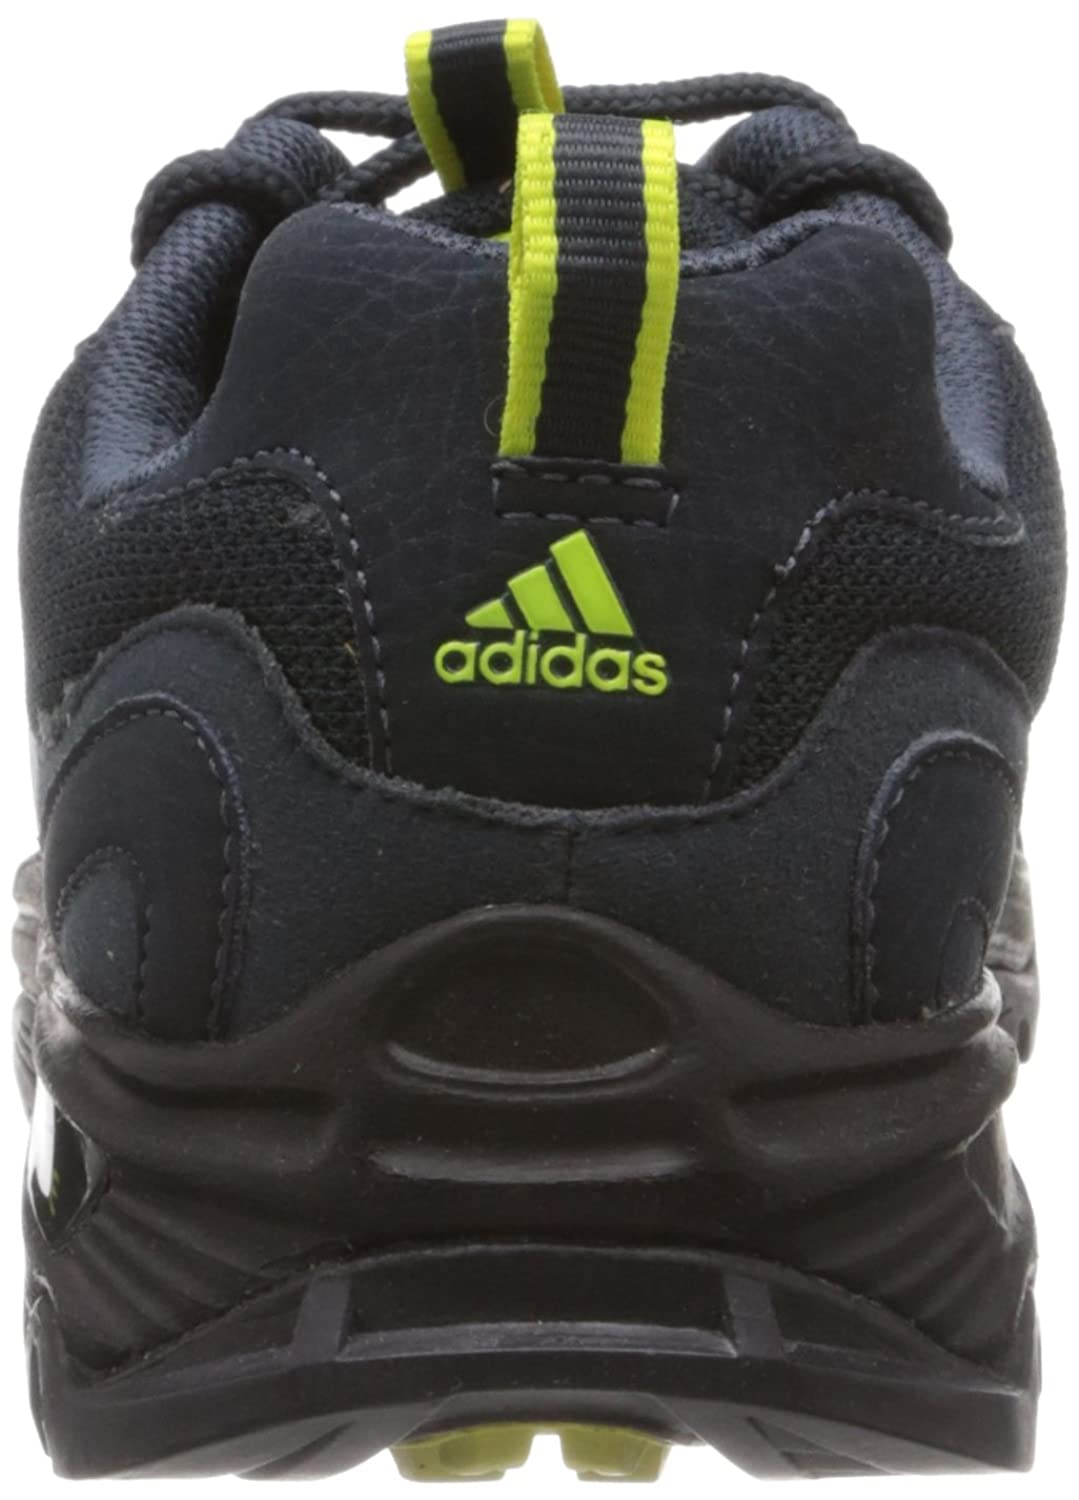 Adidas SPEED TREK M Men D70423 TECONI/DARONX/SILVER -12: Buy Online at Low  Prices in India - Amazon.in